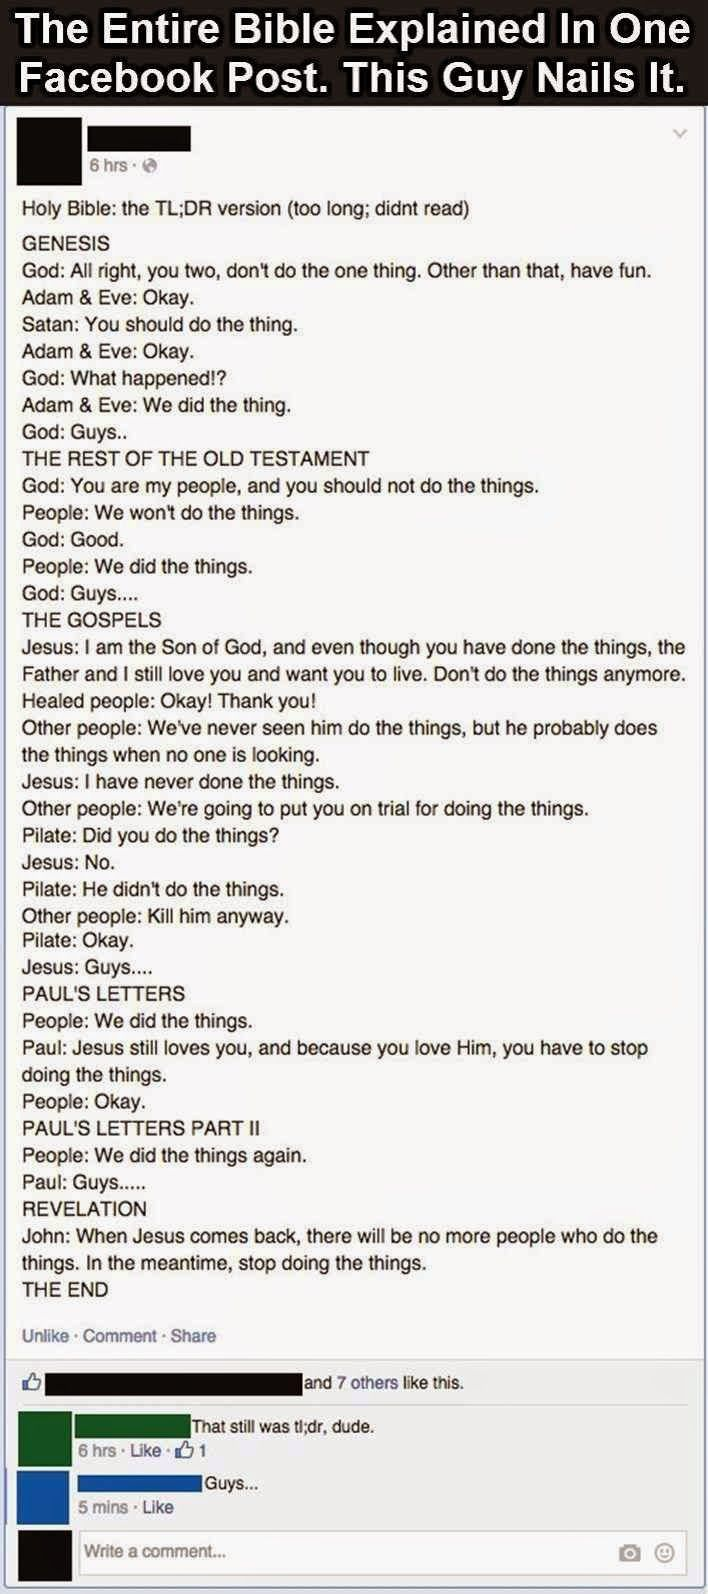 The Entire Bible explained in one Facebook post | Christian Funny Pictures - A time to laugh Guys...